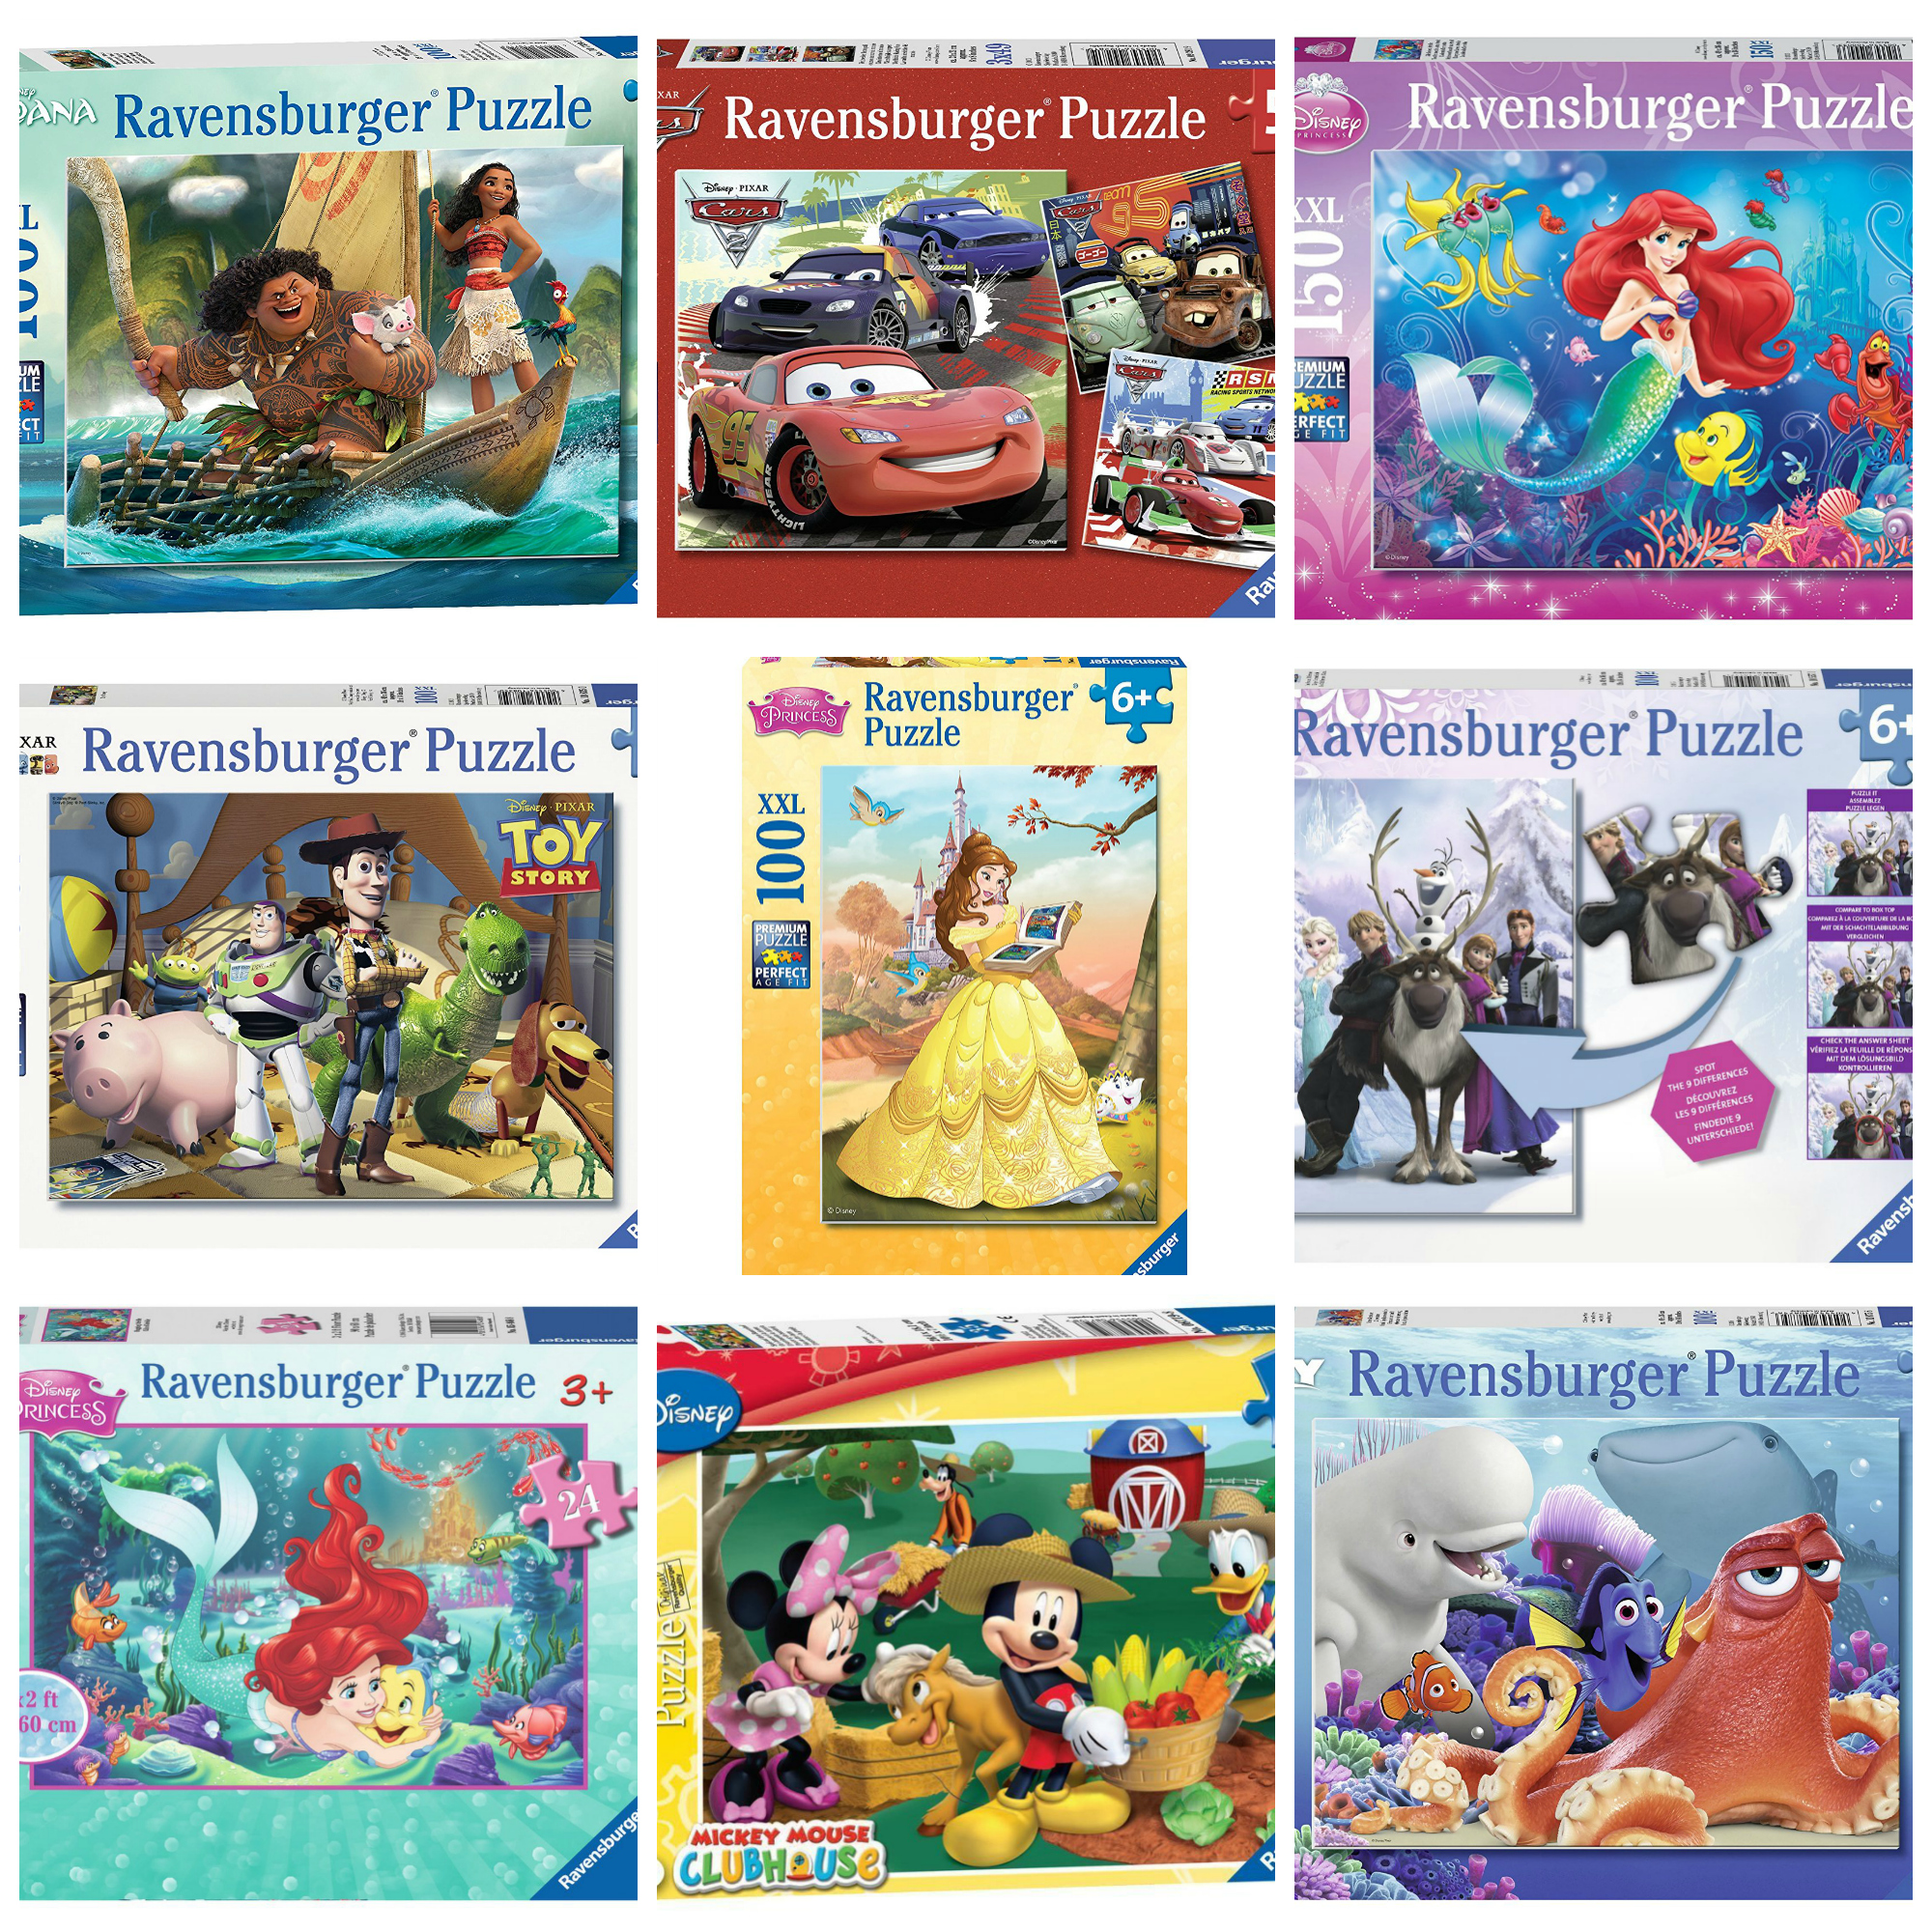 CLICK HERE TO VIEW ALL RAVENSBURGER DISNEY